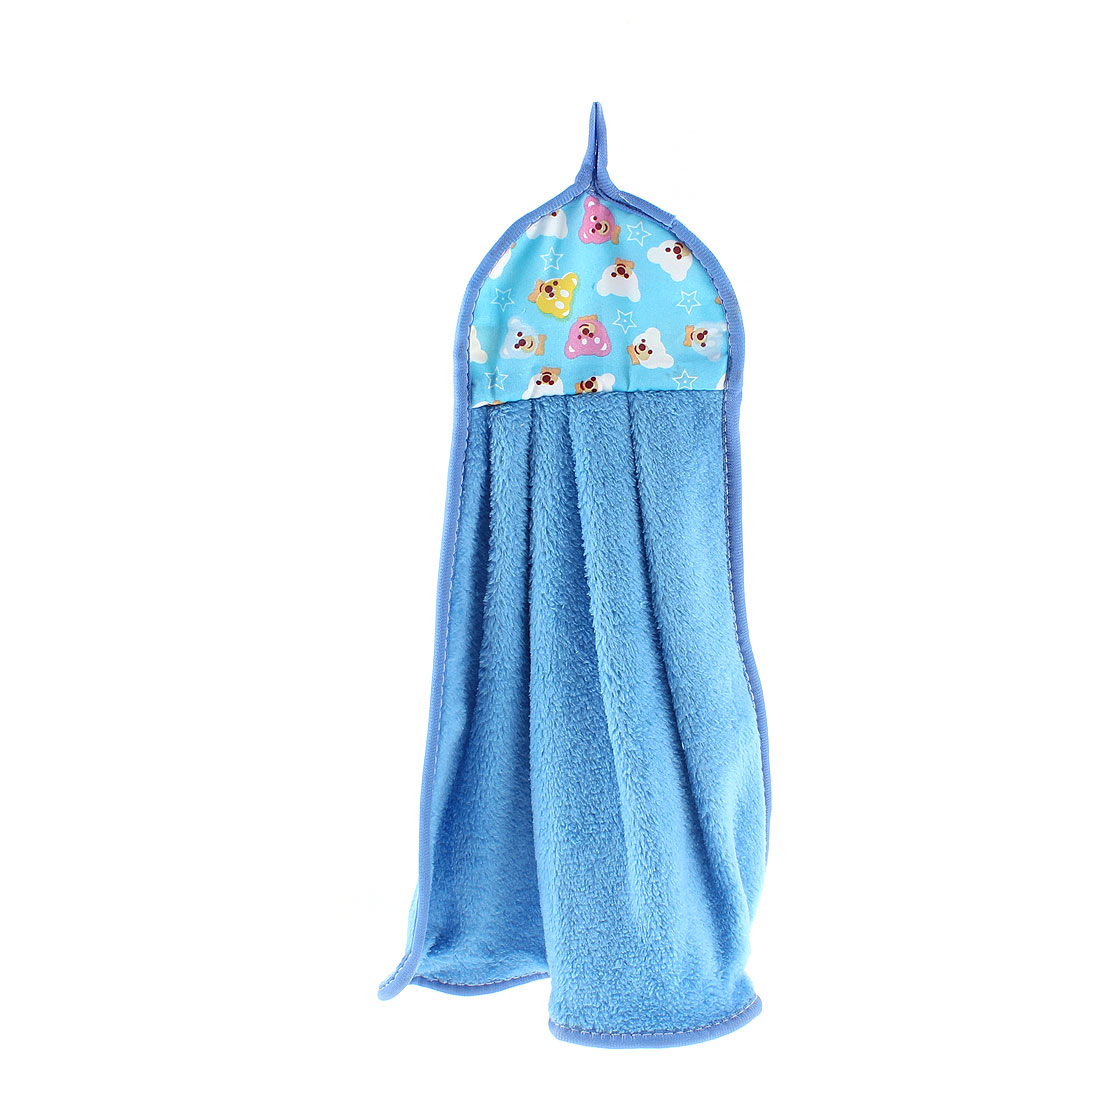 Bathroom Bears Printed Wall Hanging Cleaning Hand Drying Towel Blue